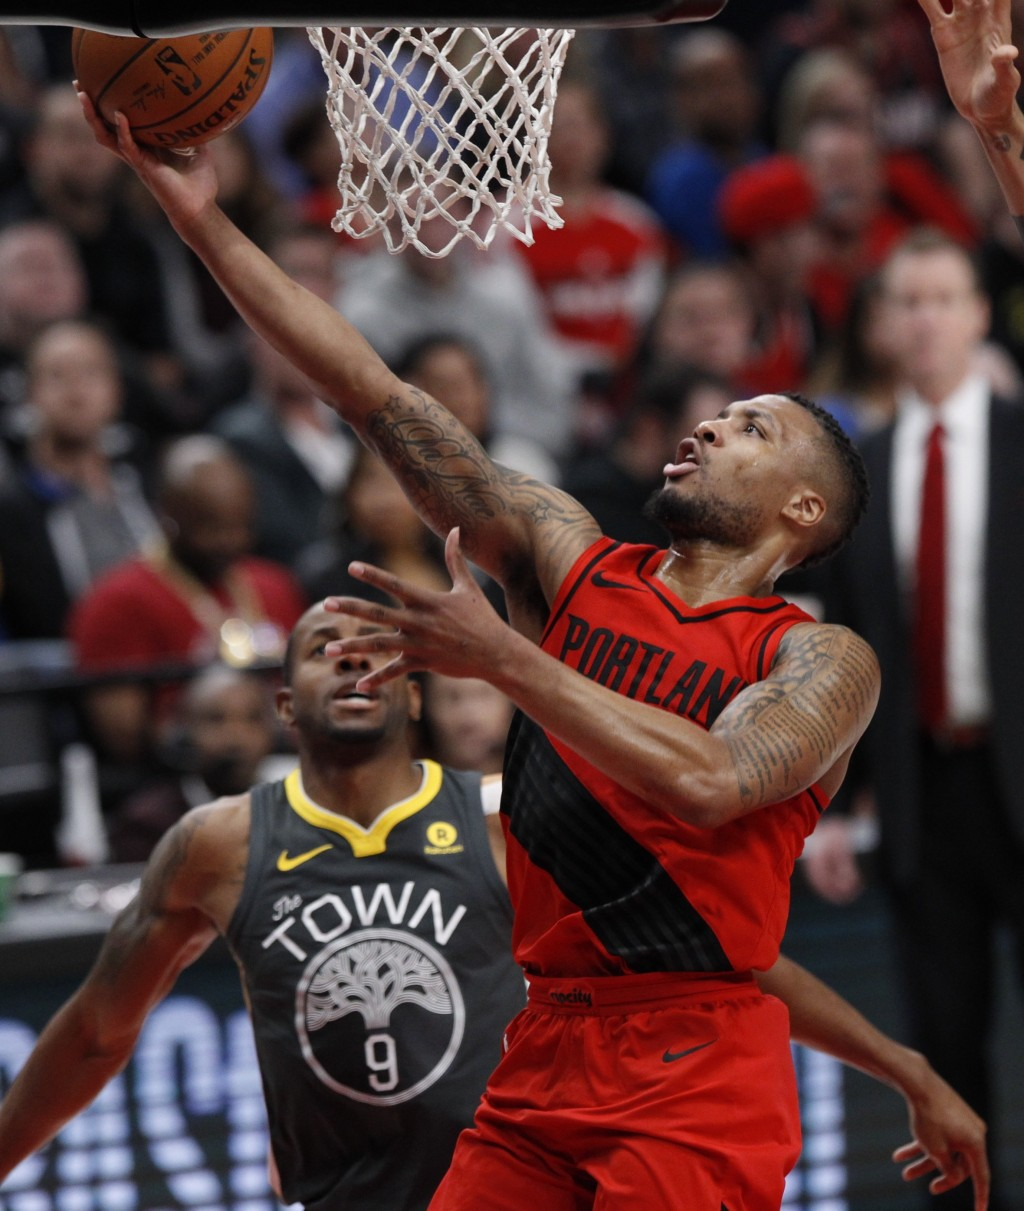 Portland Trail Blazers guard Damian Lillard, right, drives past Golden State Warriors forward Andre Iguodala during the first half of an NBA basketbal